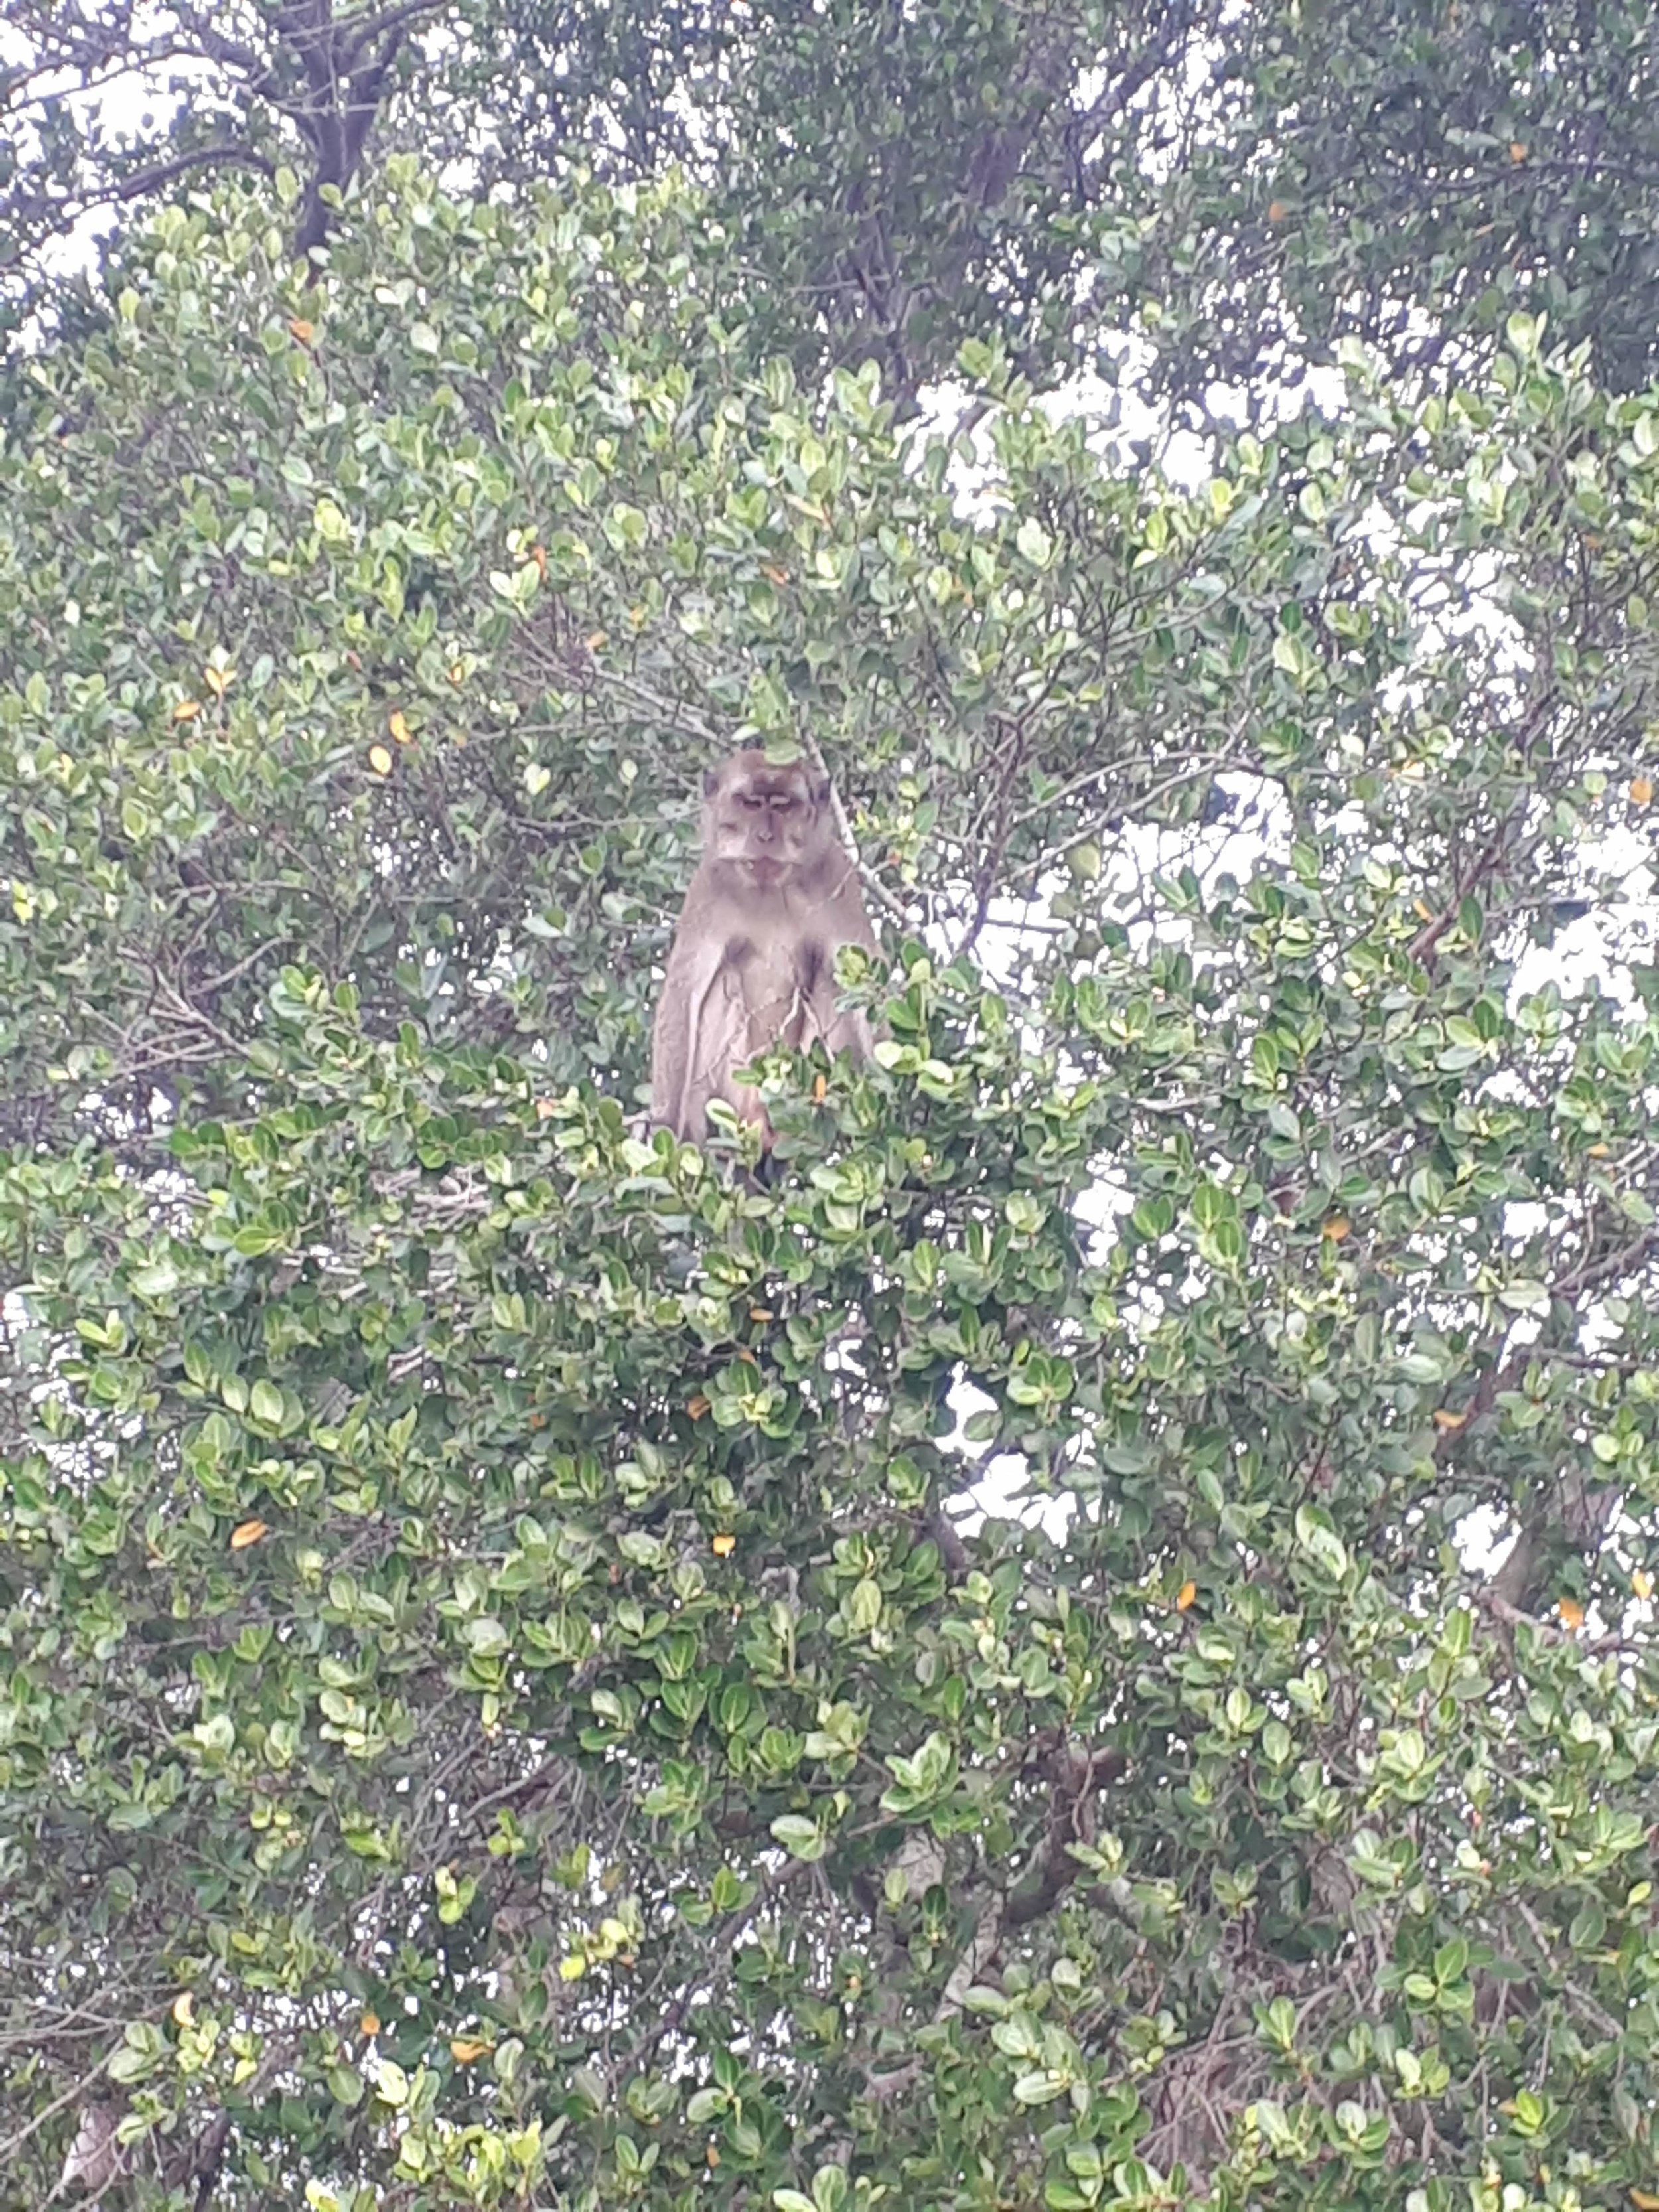 Macaque in the mangroves!